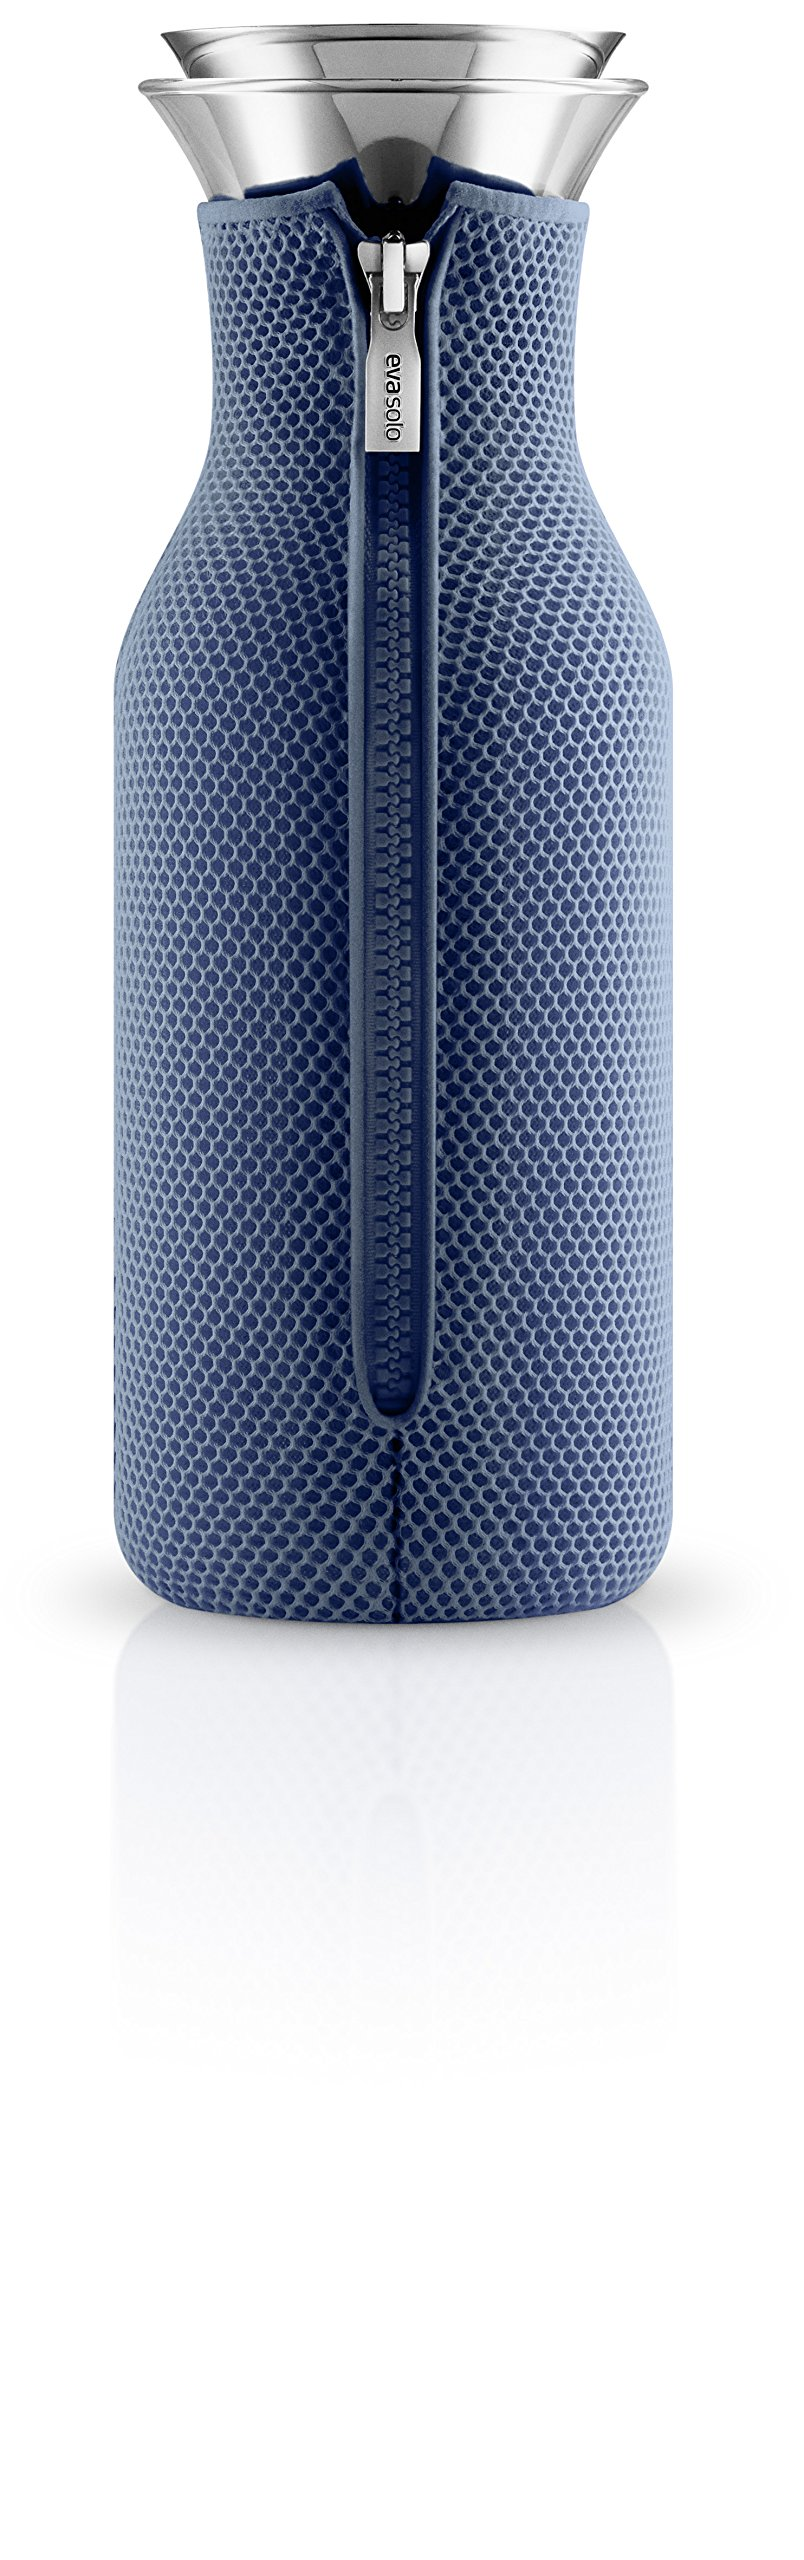 Eva Solo Fridge Carafe with 3D cover 1.0L (Moonlight Blue) by Eva Solo